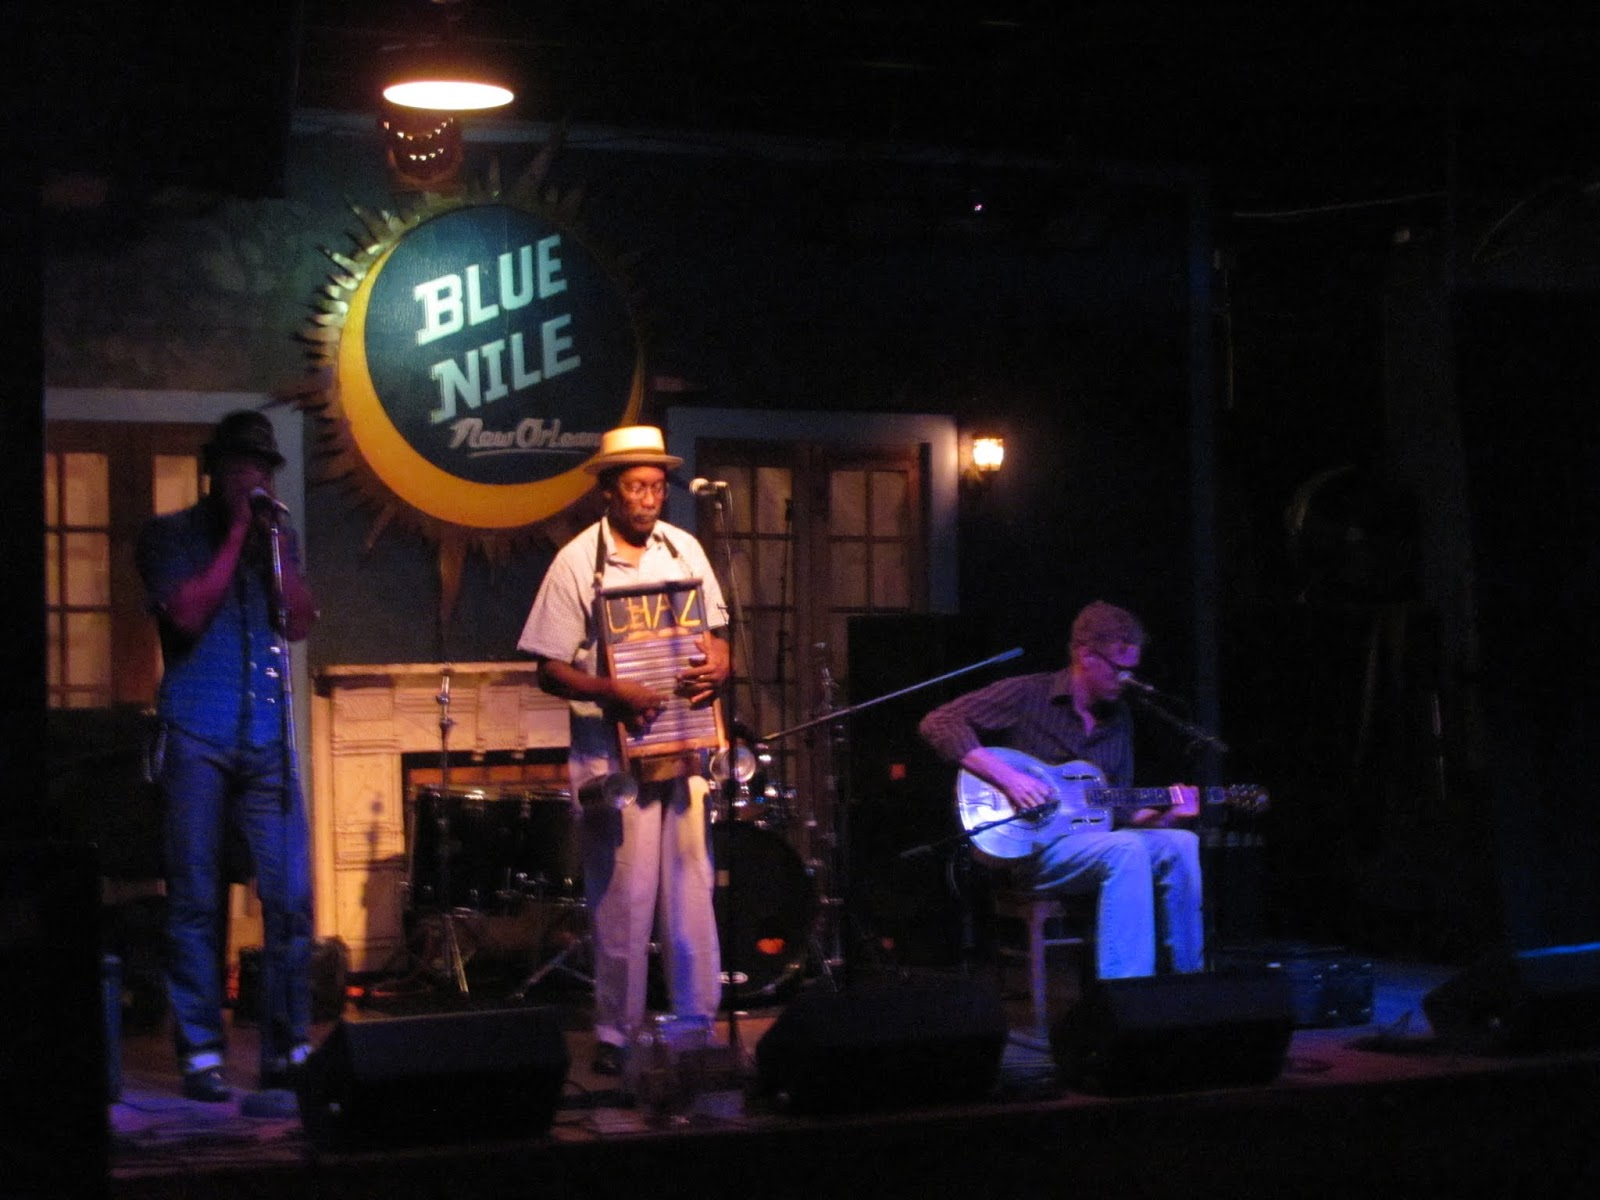 Three-piece blues band at the Blue Nile in New Orleans, LA.  Harmonica player, washboard player, guitar player.